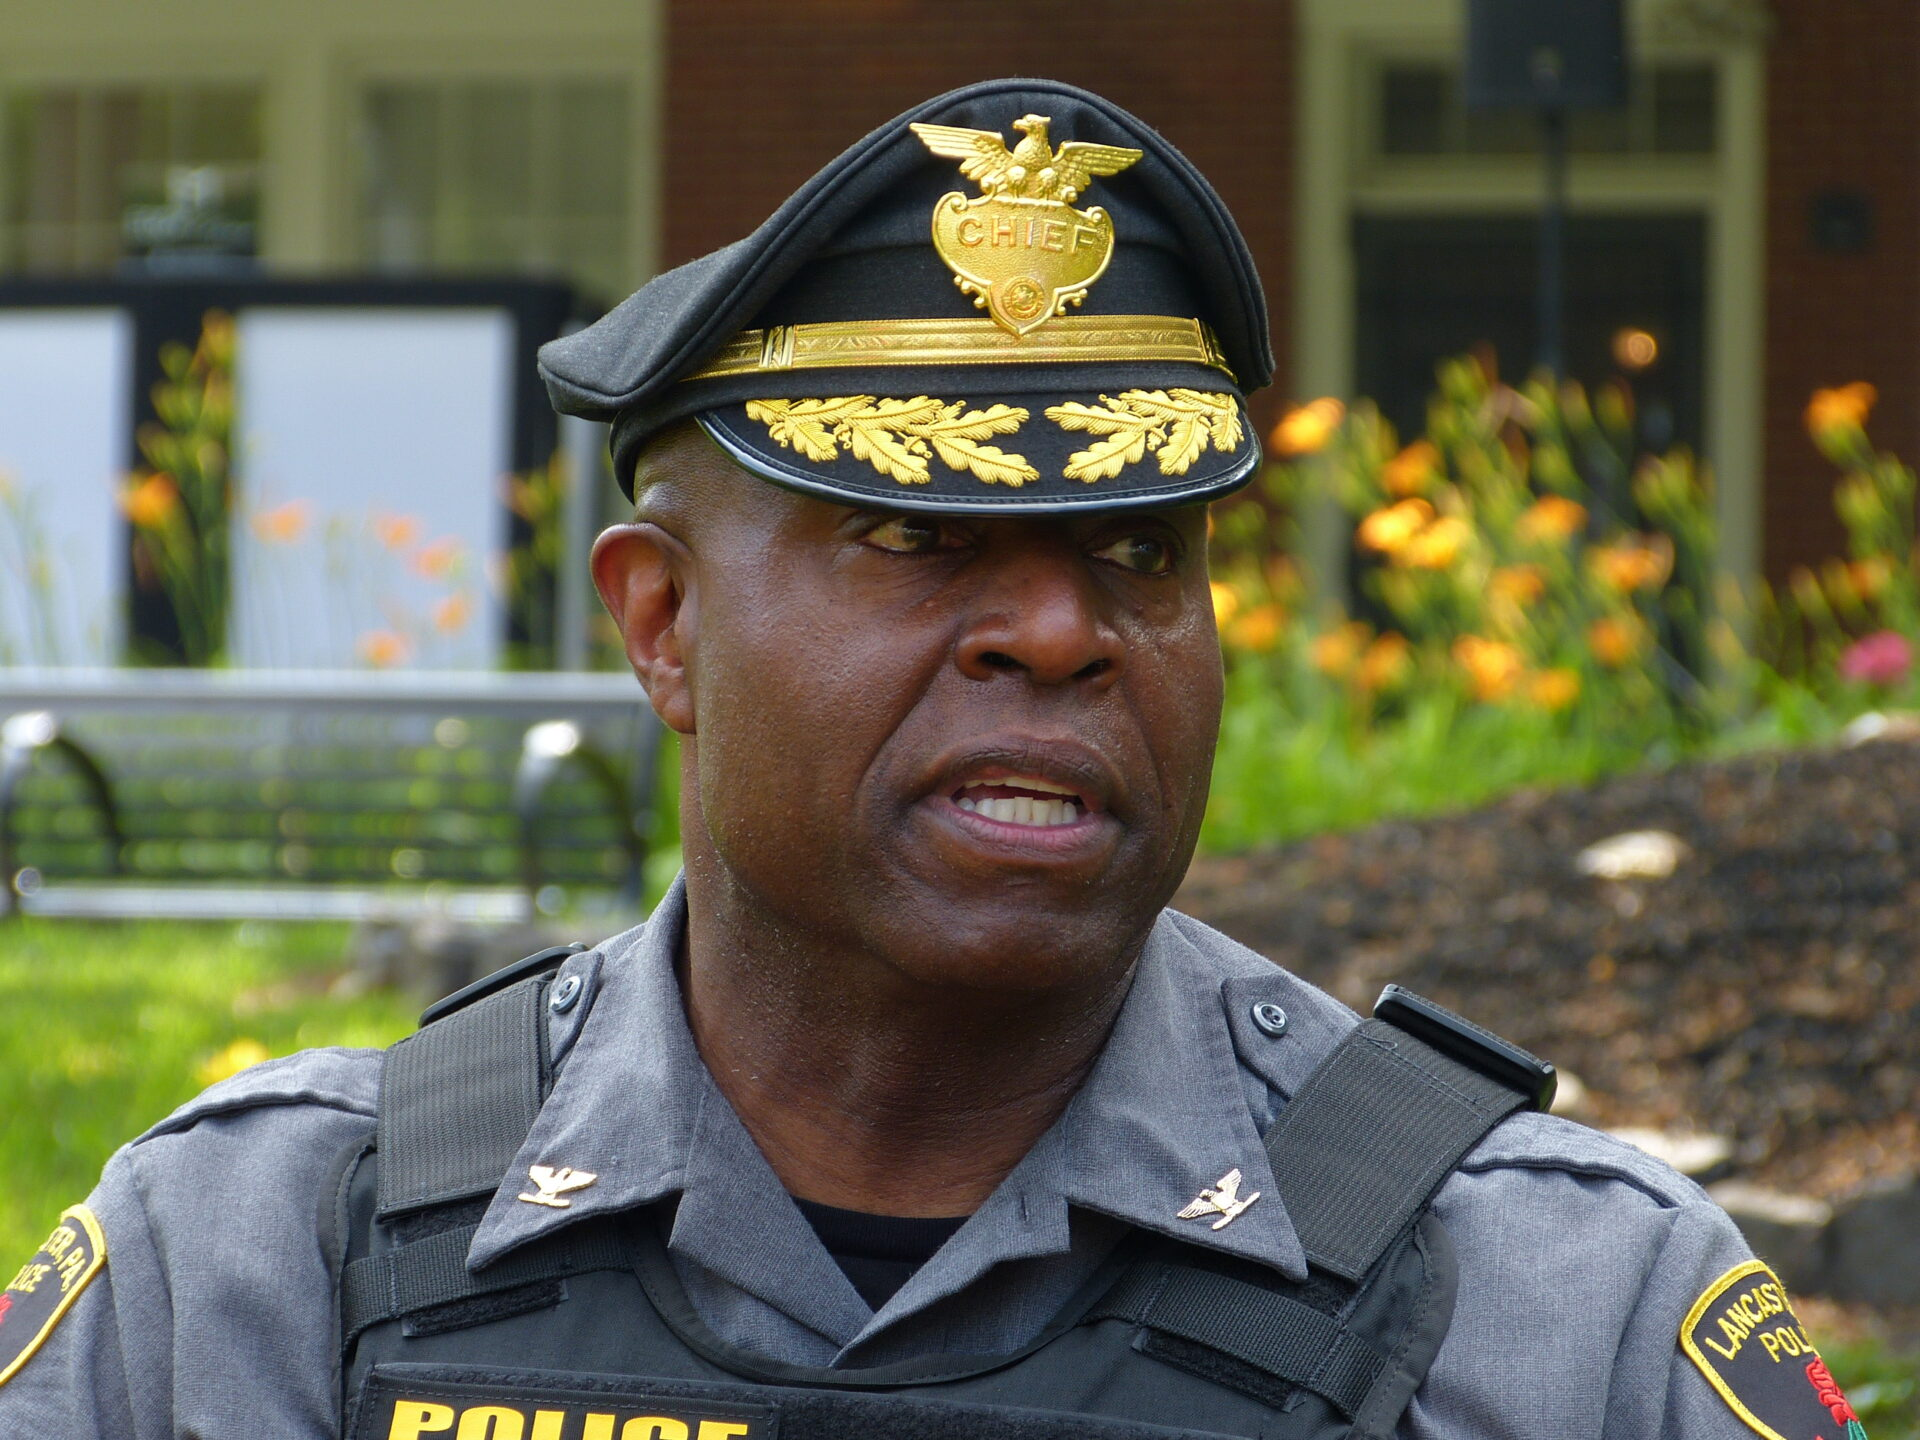 Lancaster police Chief John Bey speaks to the media at Musser Park on Monday, June 21, 2021. (Photo: Tim Stuhldreher)